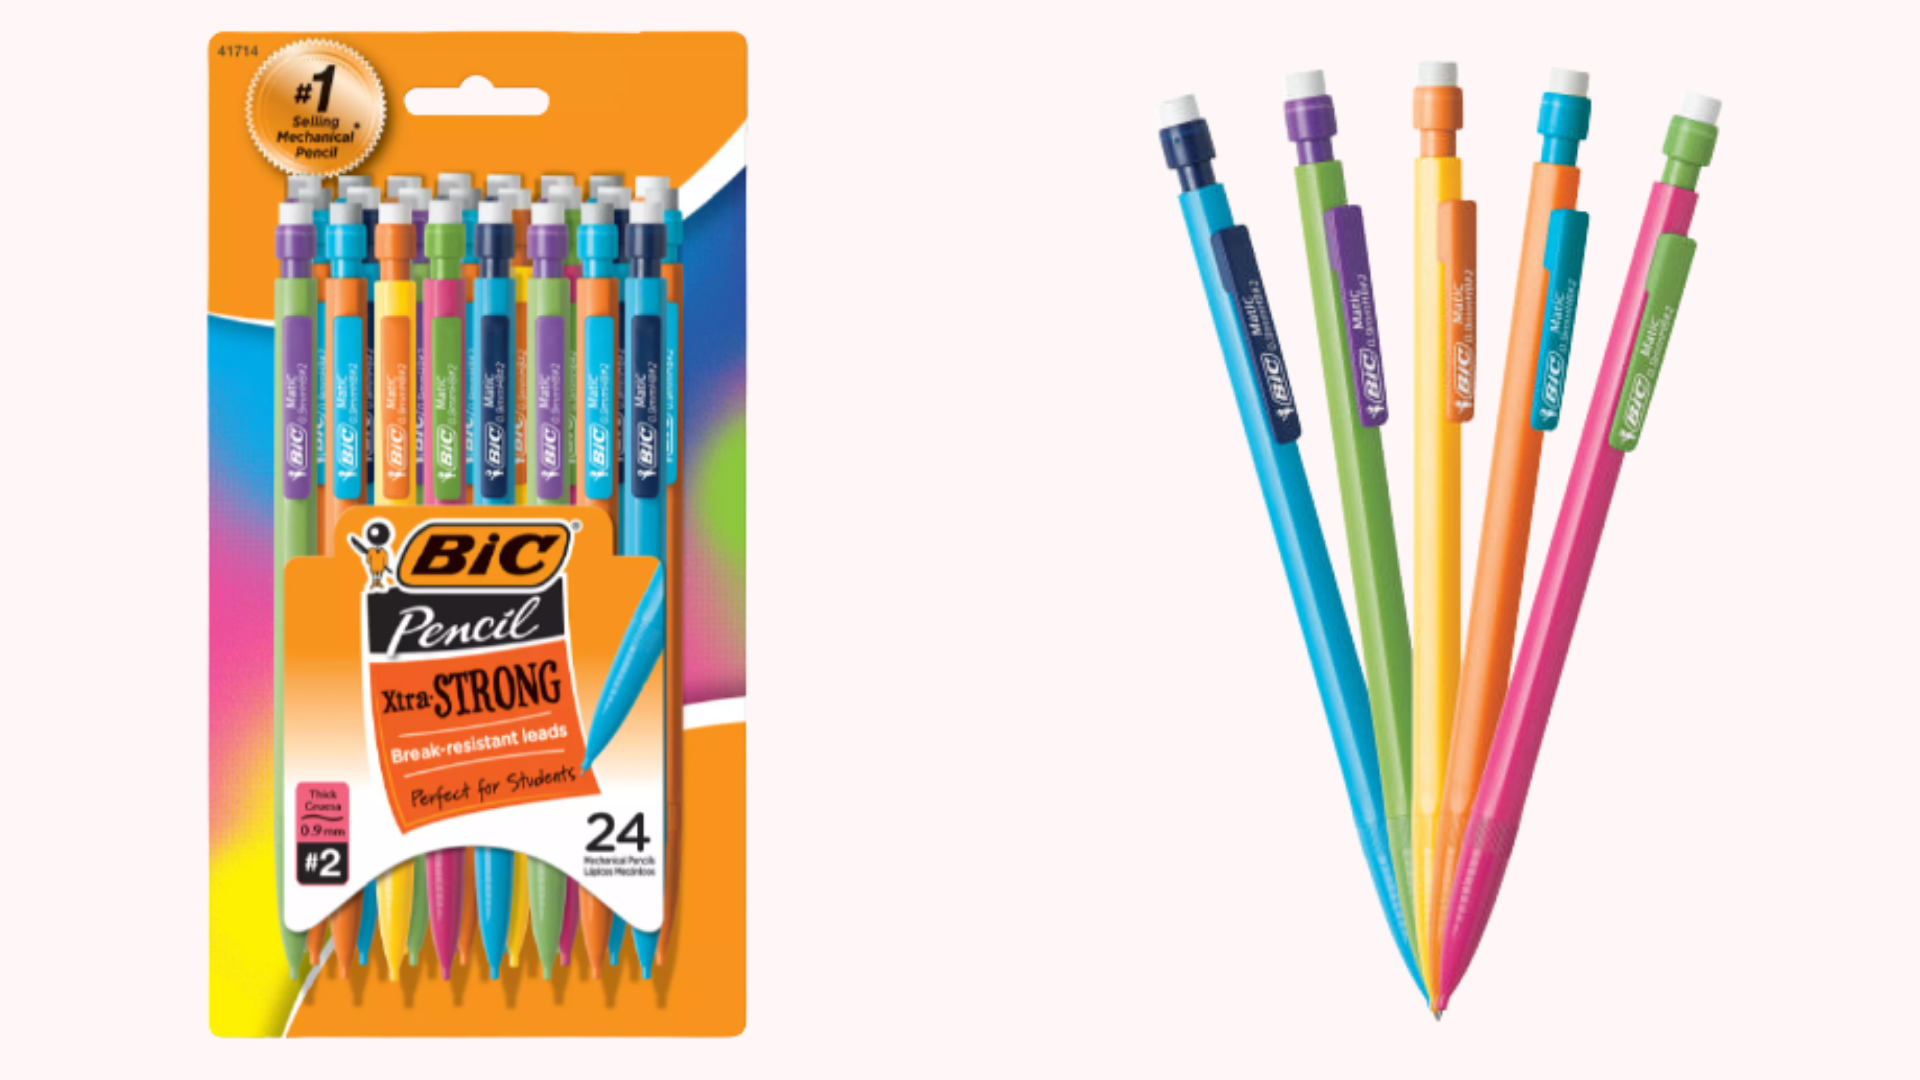 A pack of multi-colored pens